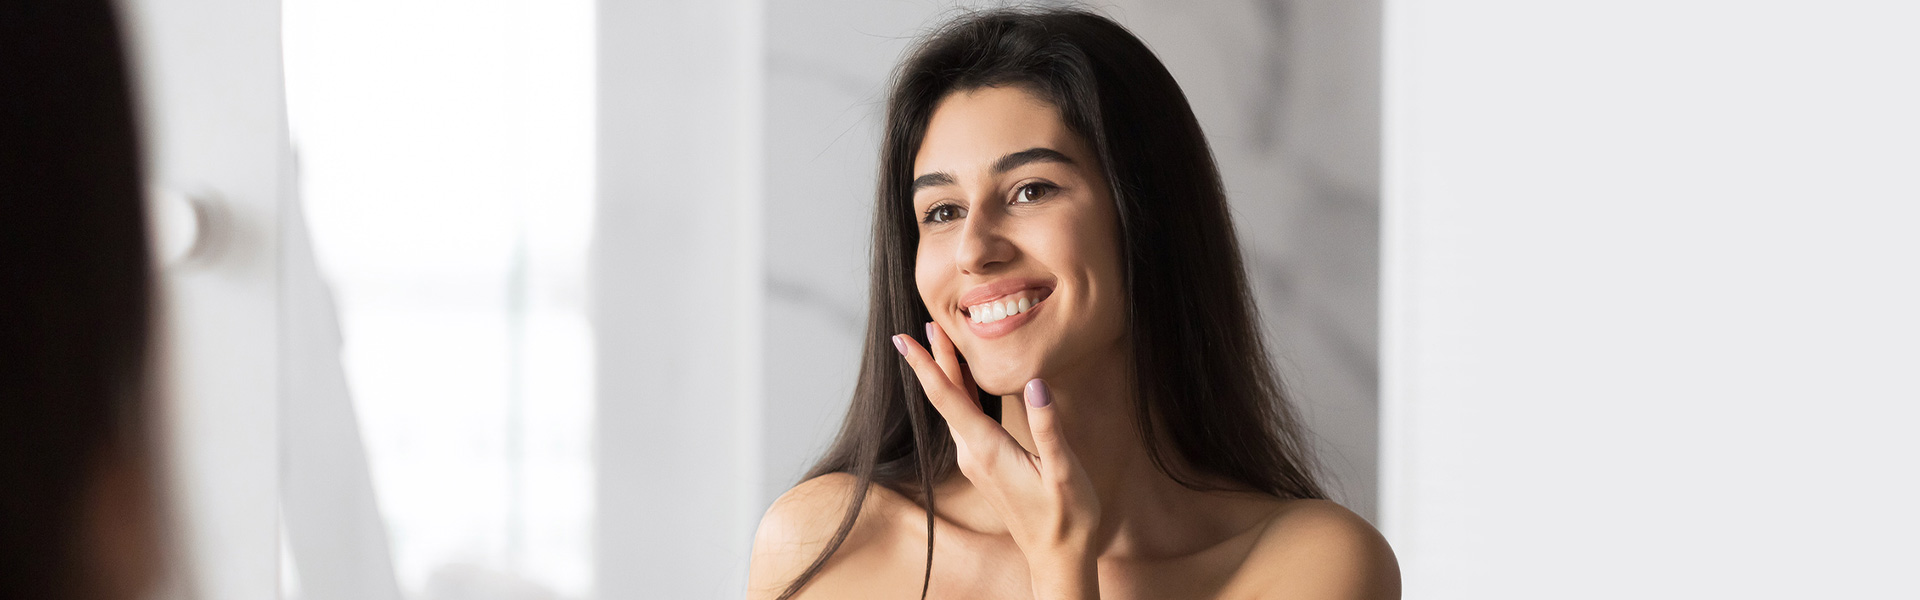 An Overview of Smile Makeovers in Houston